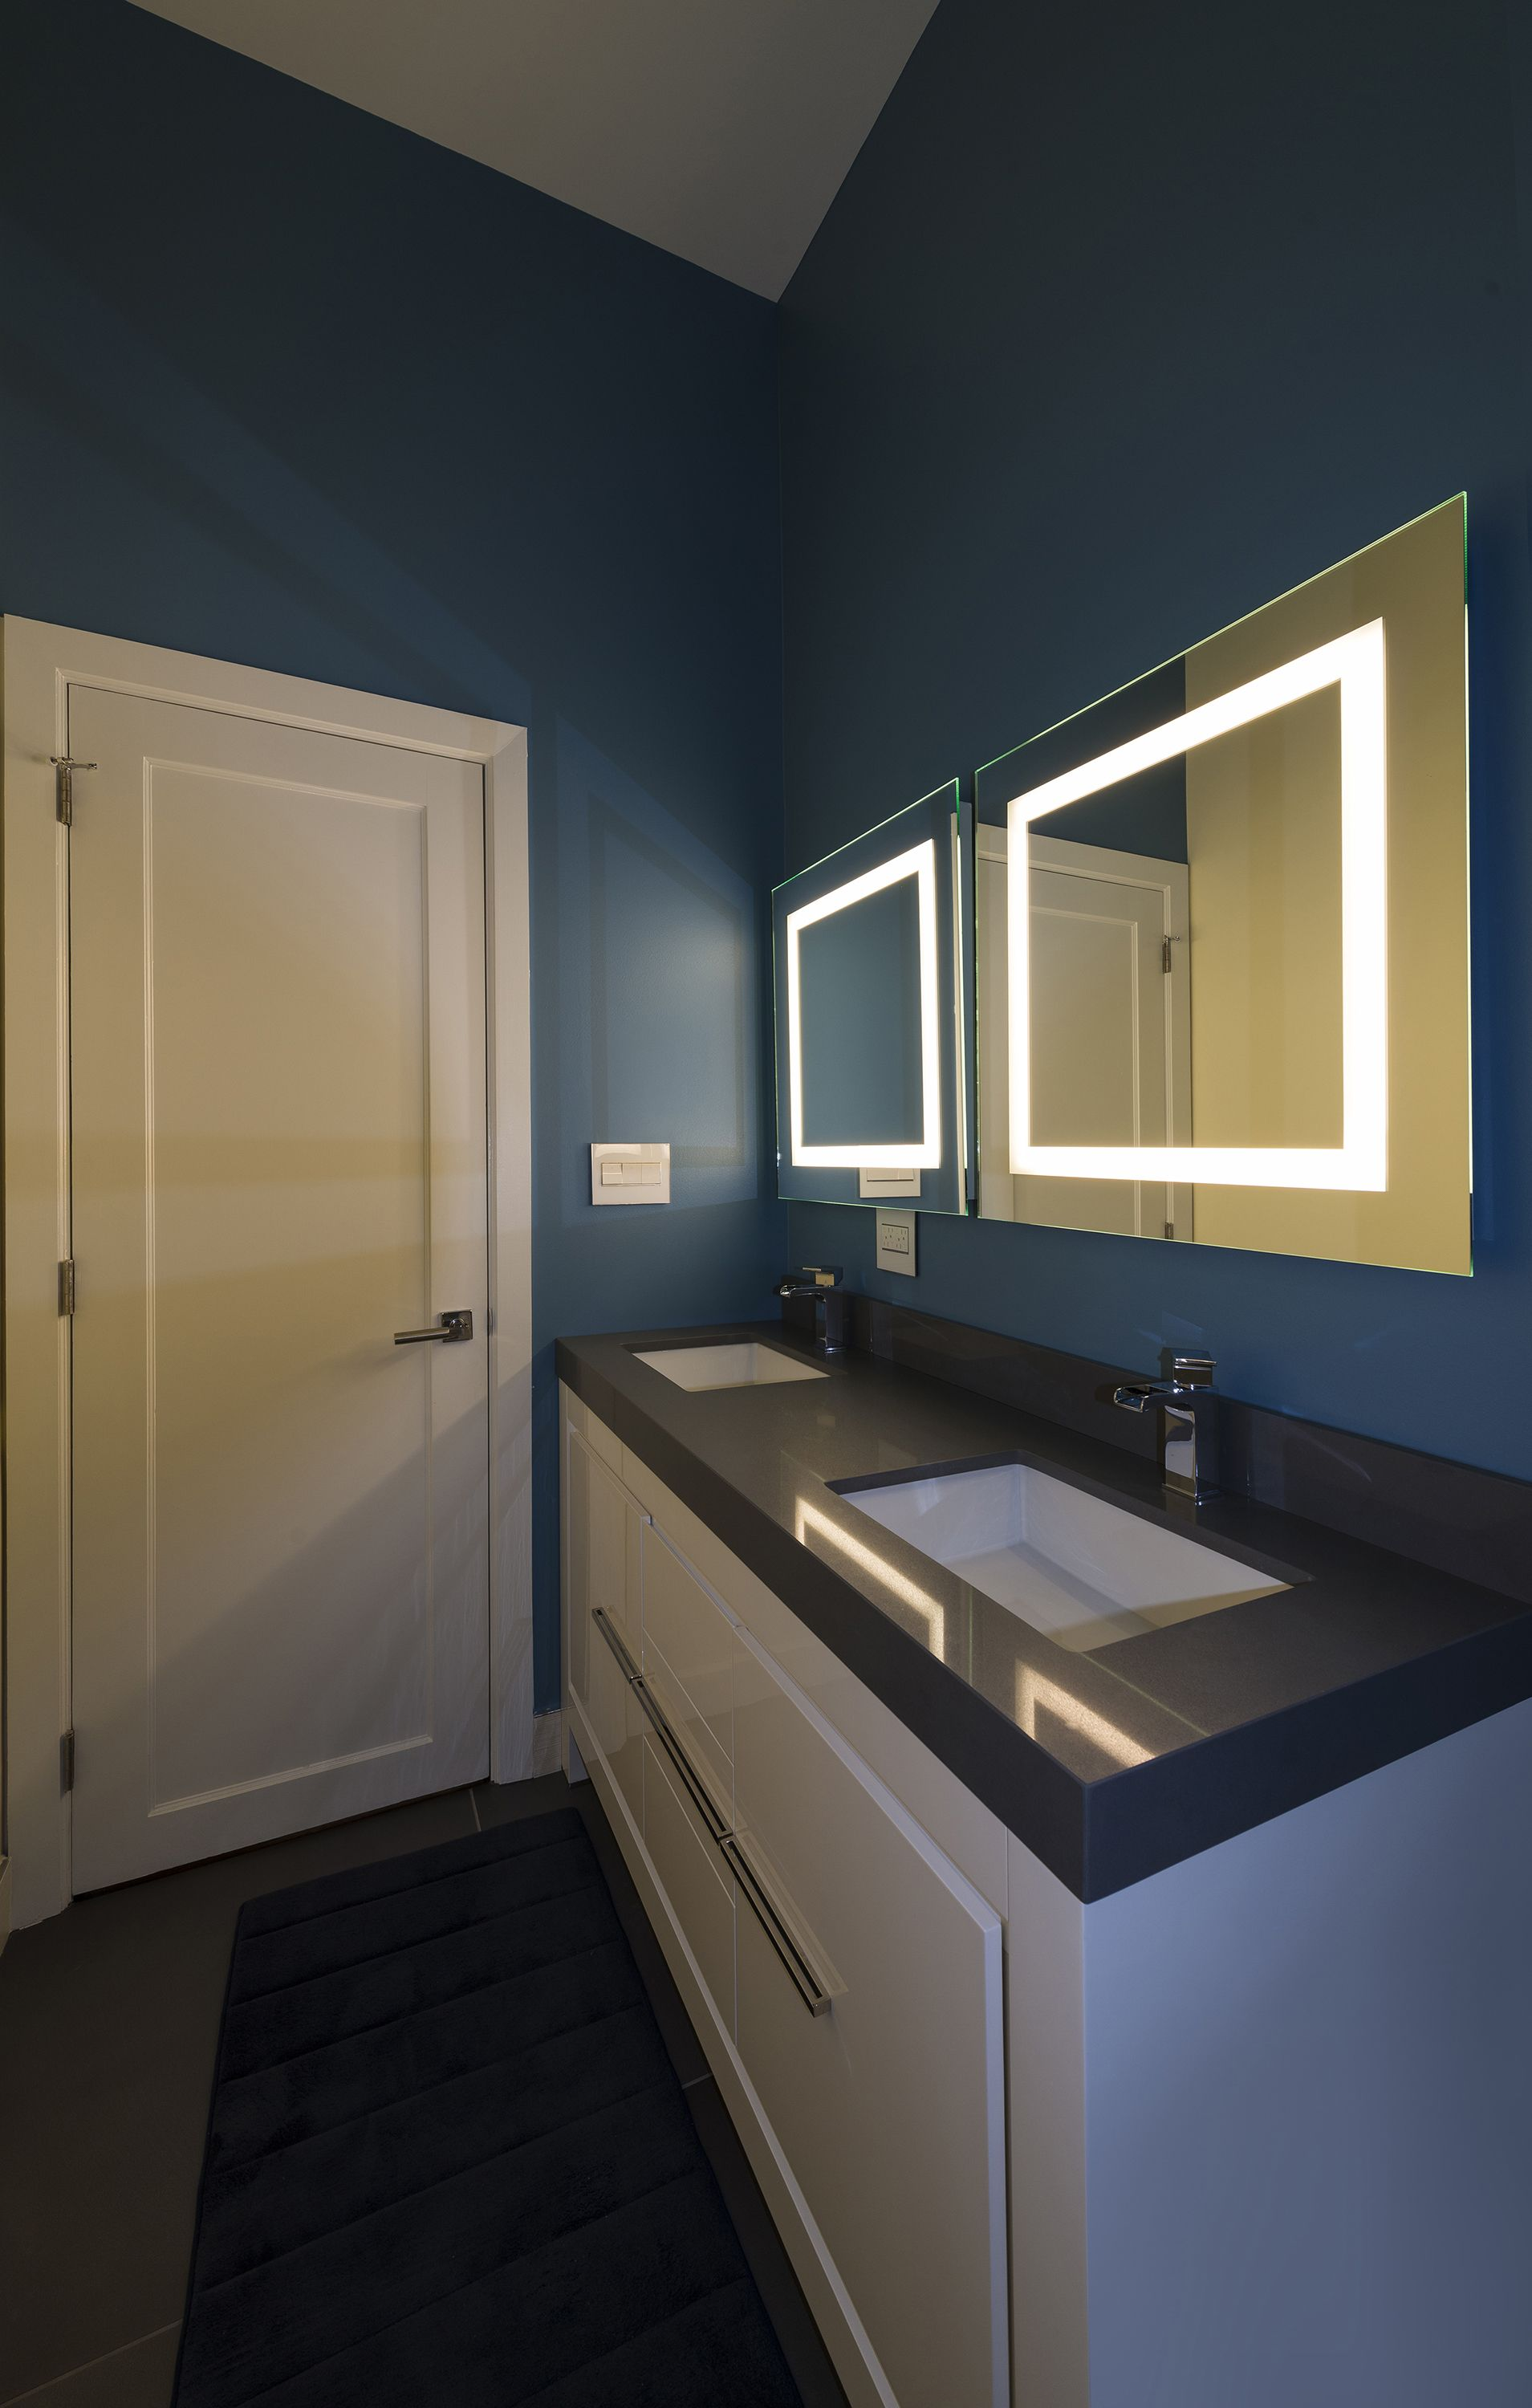 Bathroom And Vanity Lighting Idea | Modern Bathroom Idea | Small Plaza  Dimmable Mirror - By